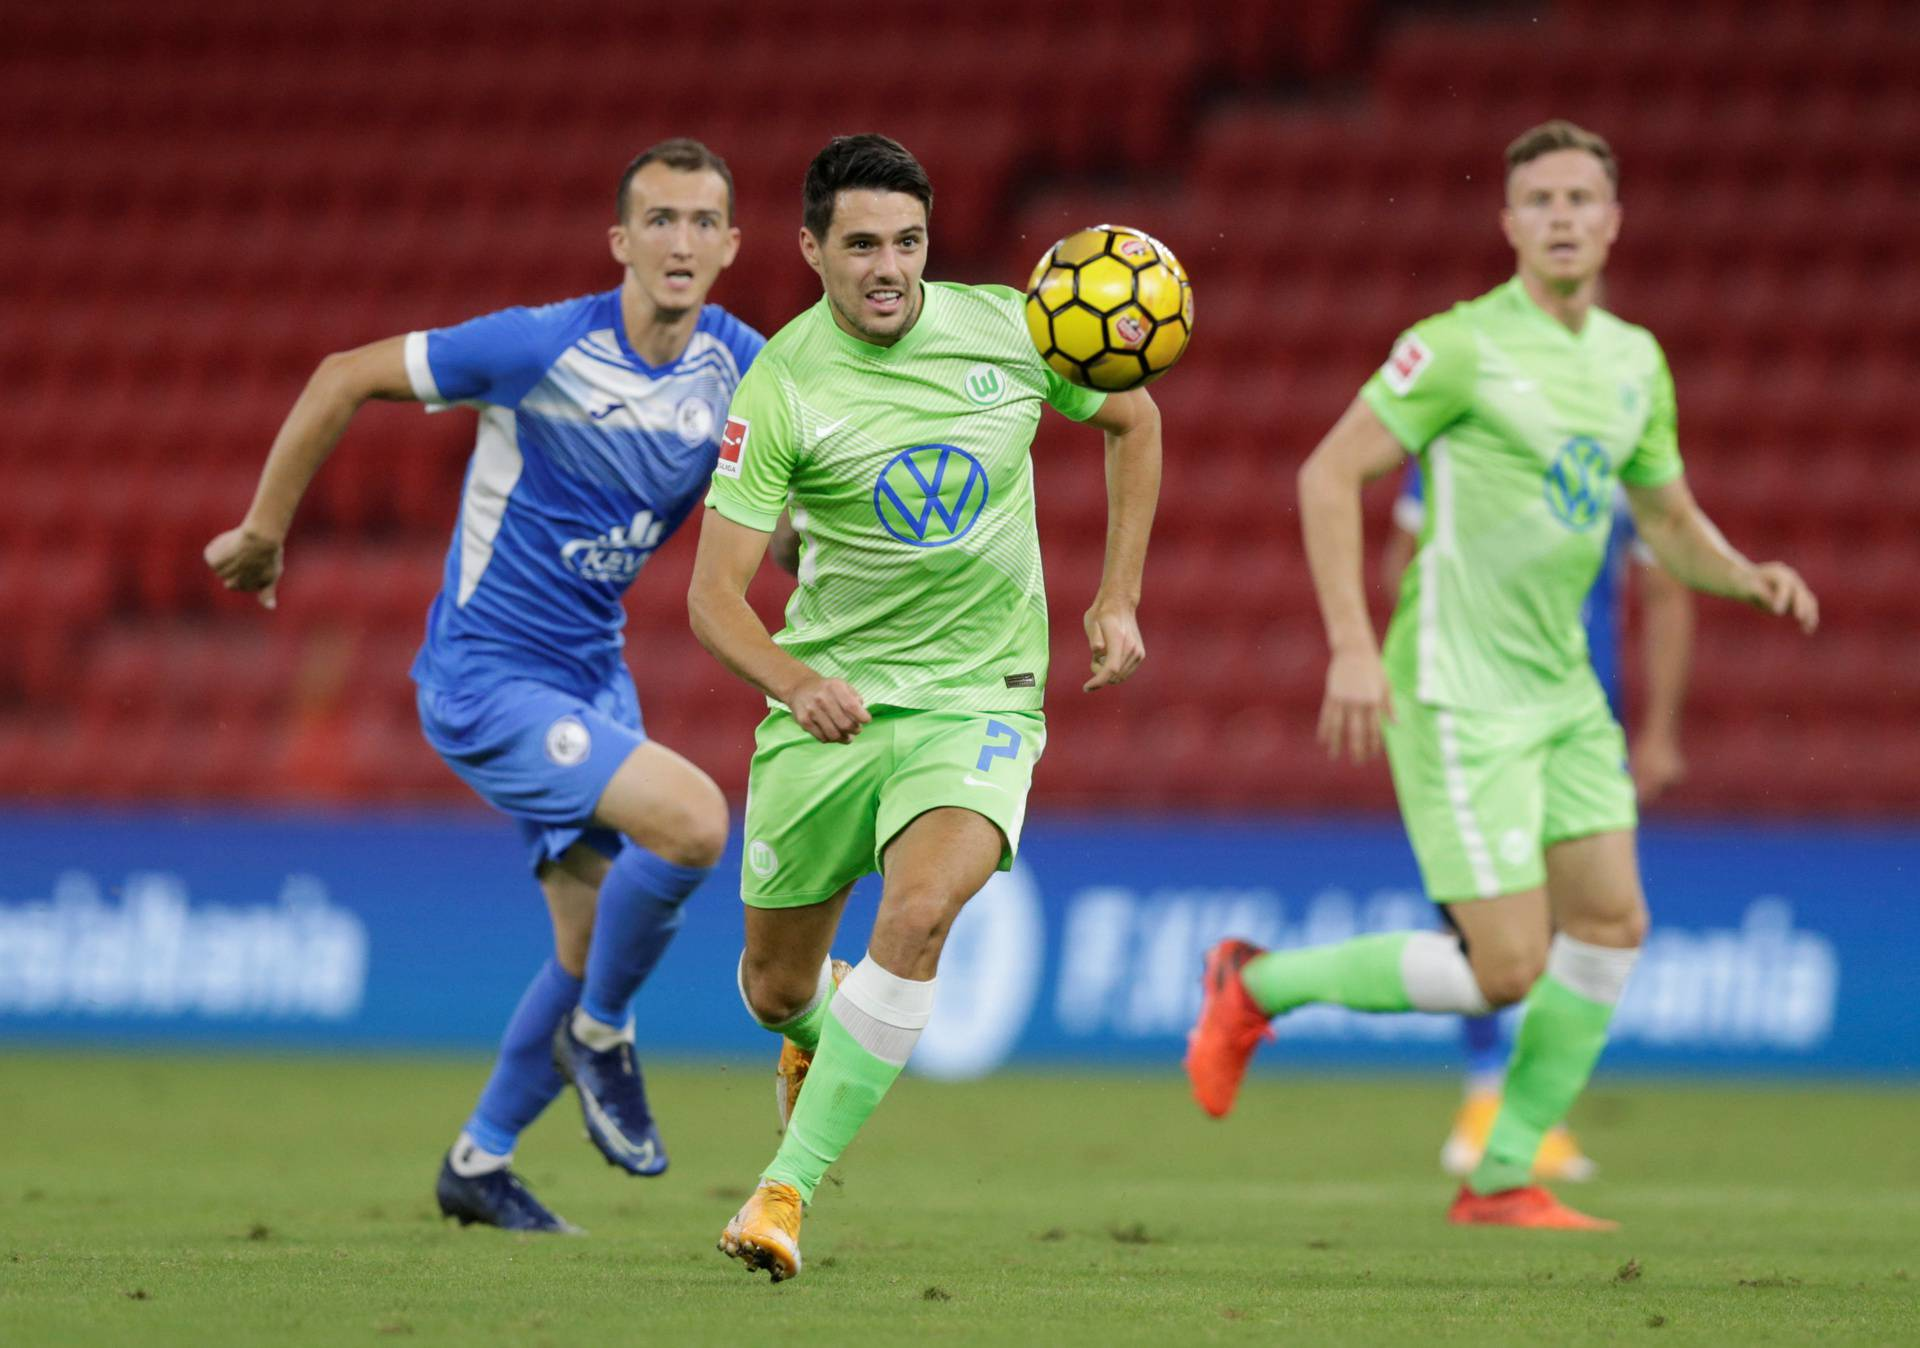 Europa League - Second Qualifying Round - Kukes v VfL Wolfsburg